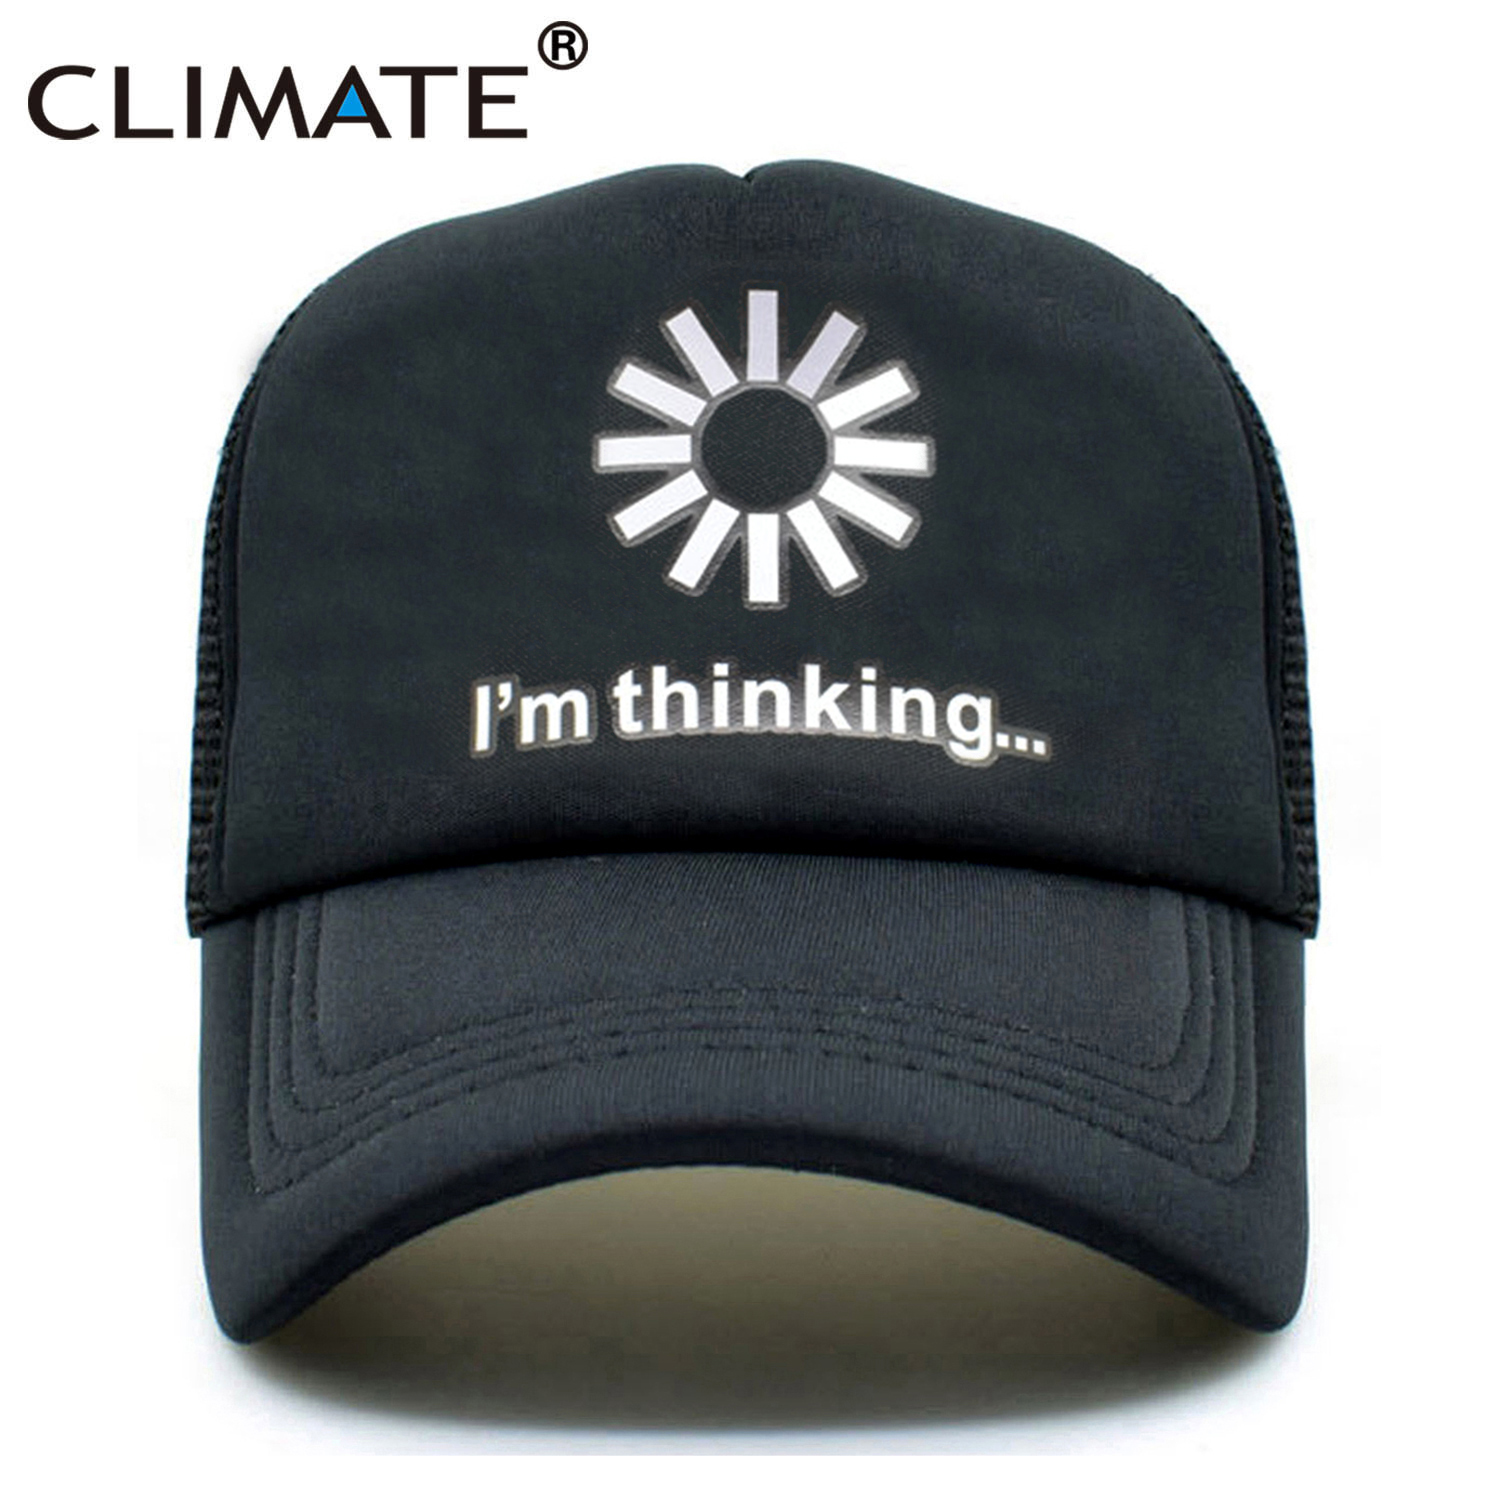 CLIMATE Men Women Trucker Cap Funny I am Thinking Loading  Caps Cool Black Summer Funny Mesh Net Trucker Caps Hat For Men Women